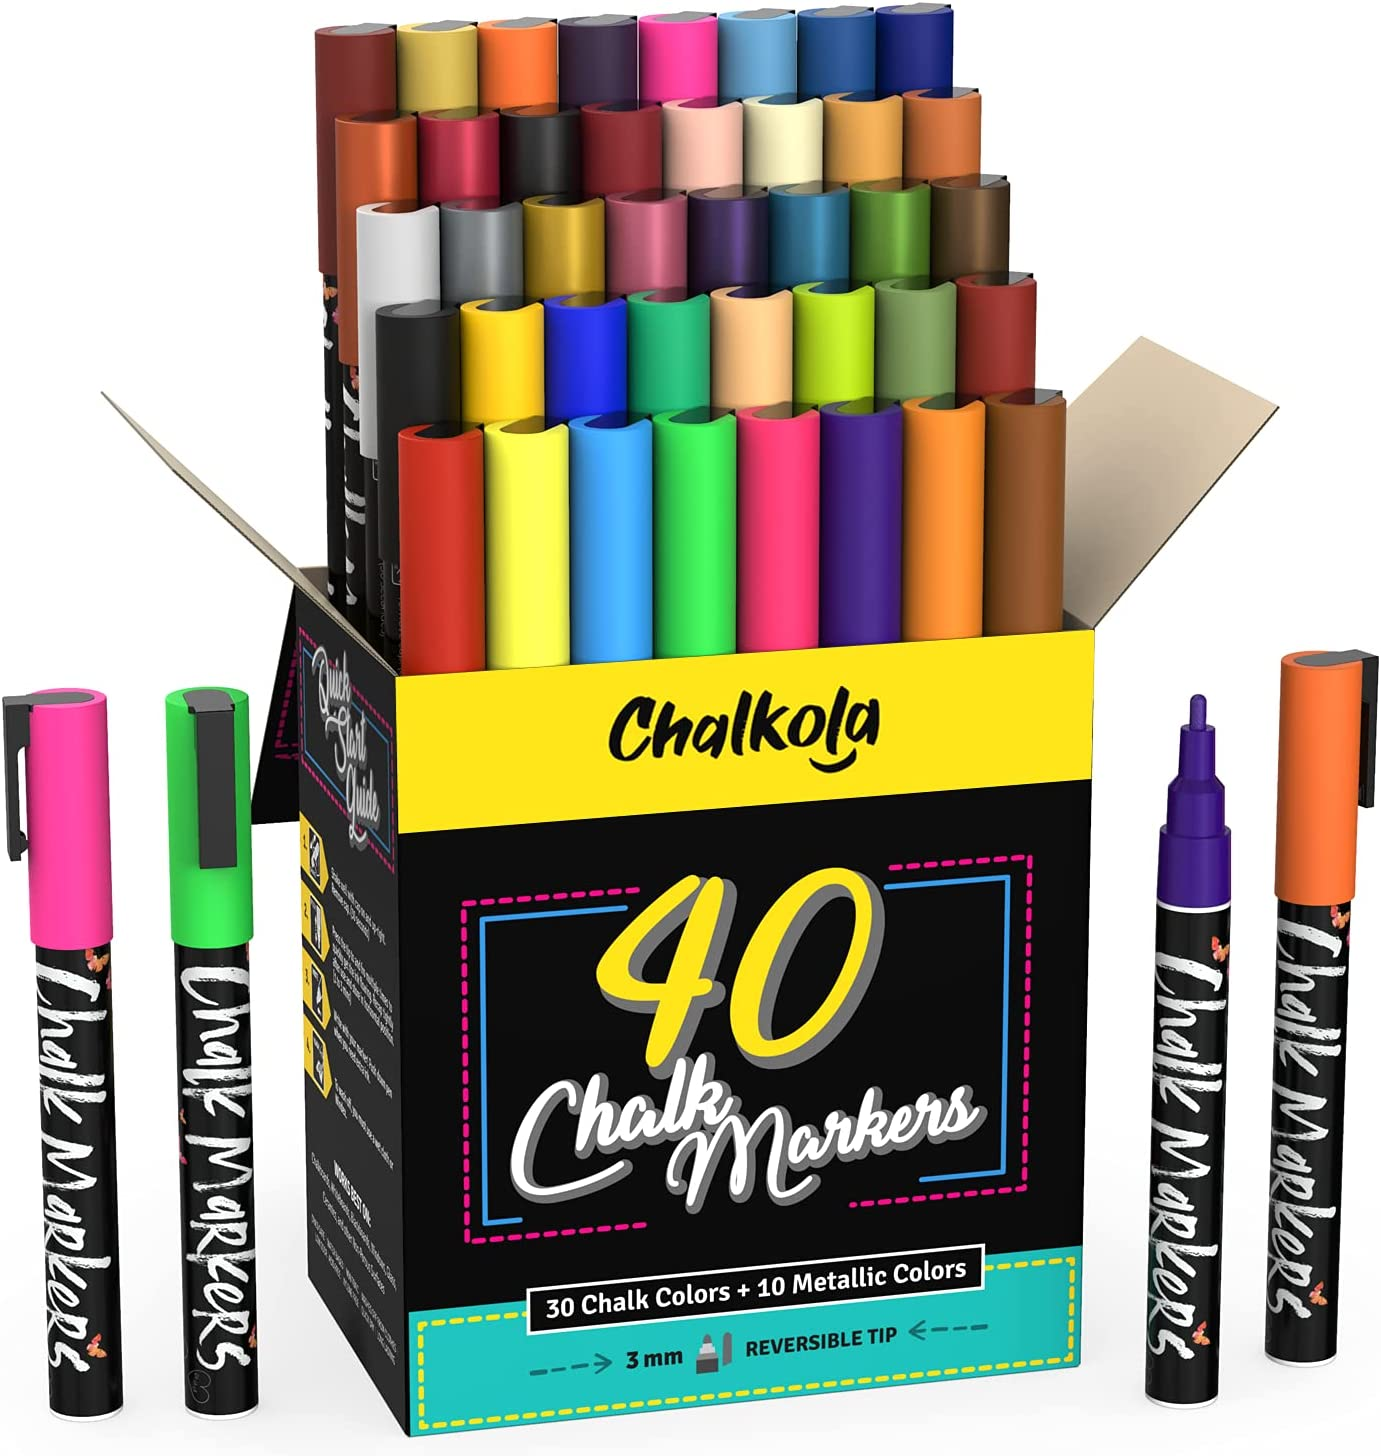 Fine Tip Chalk Reservation Markers - Pack C Challenge the lowest price of Japan ☆ Neon of 40 Metallic Classic